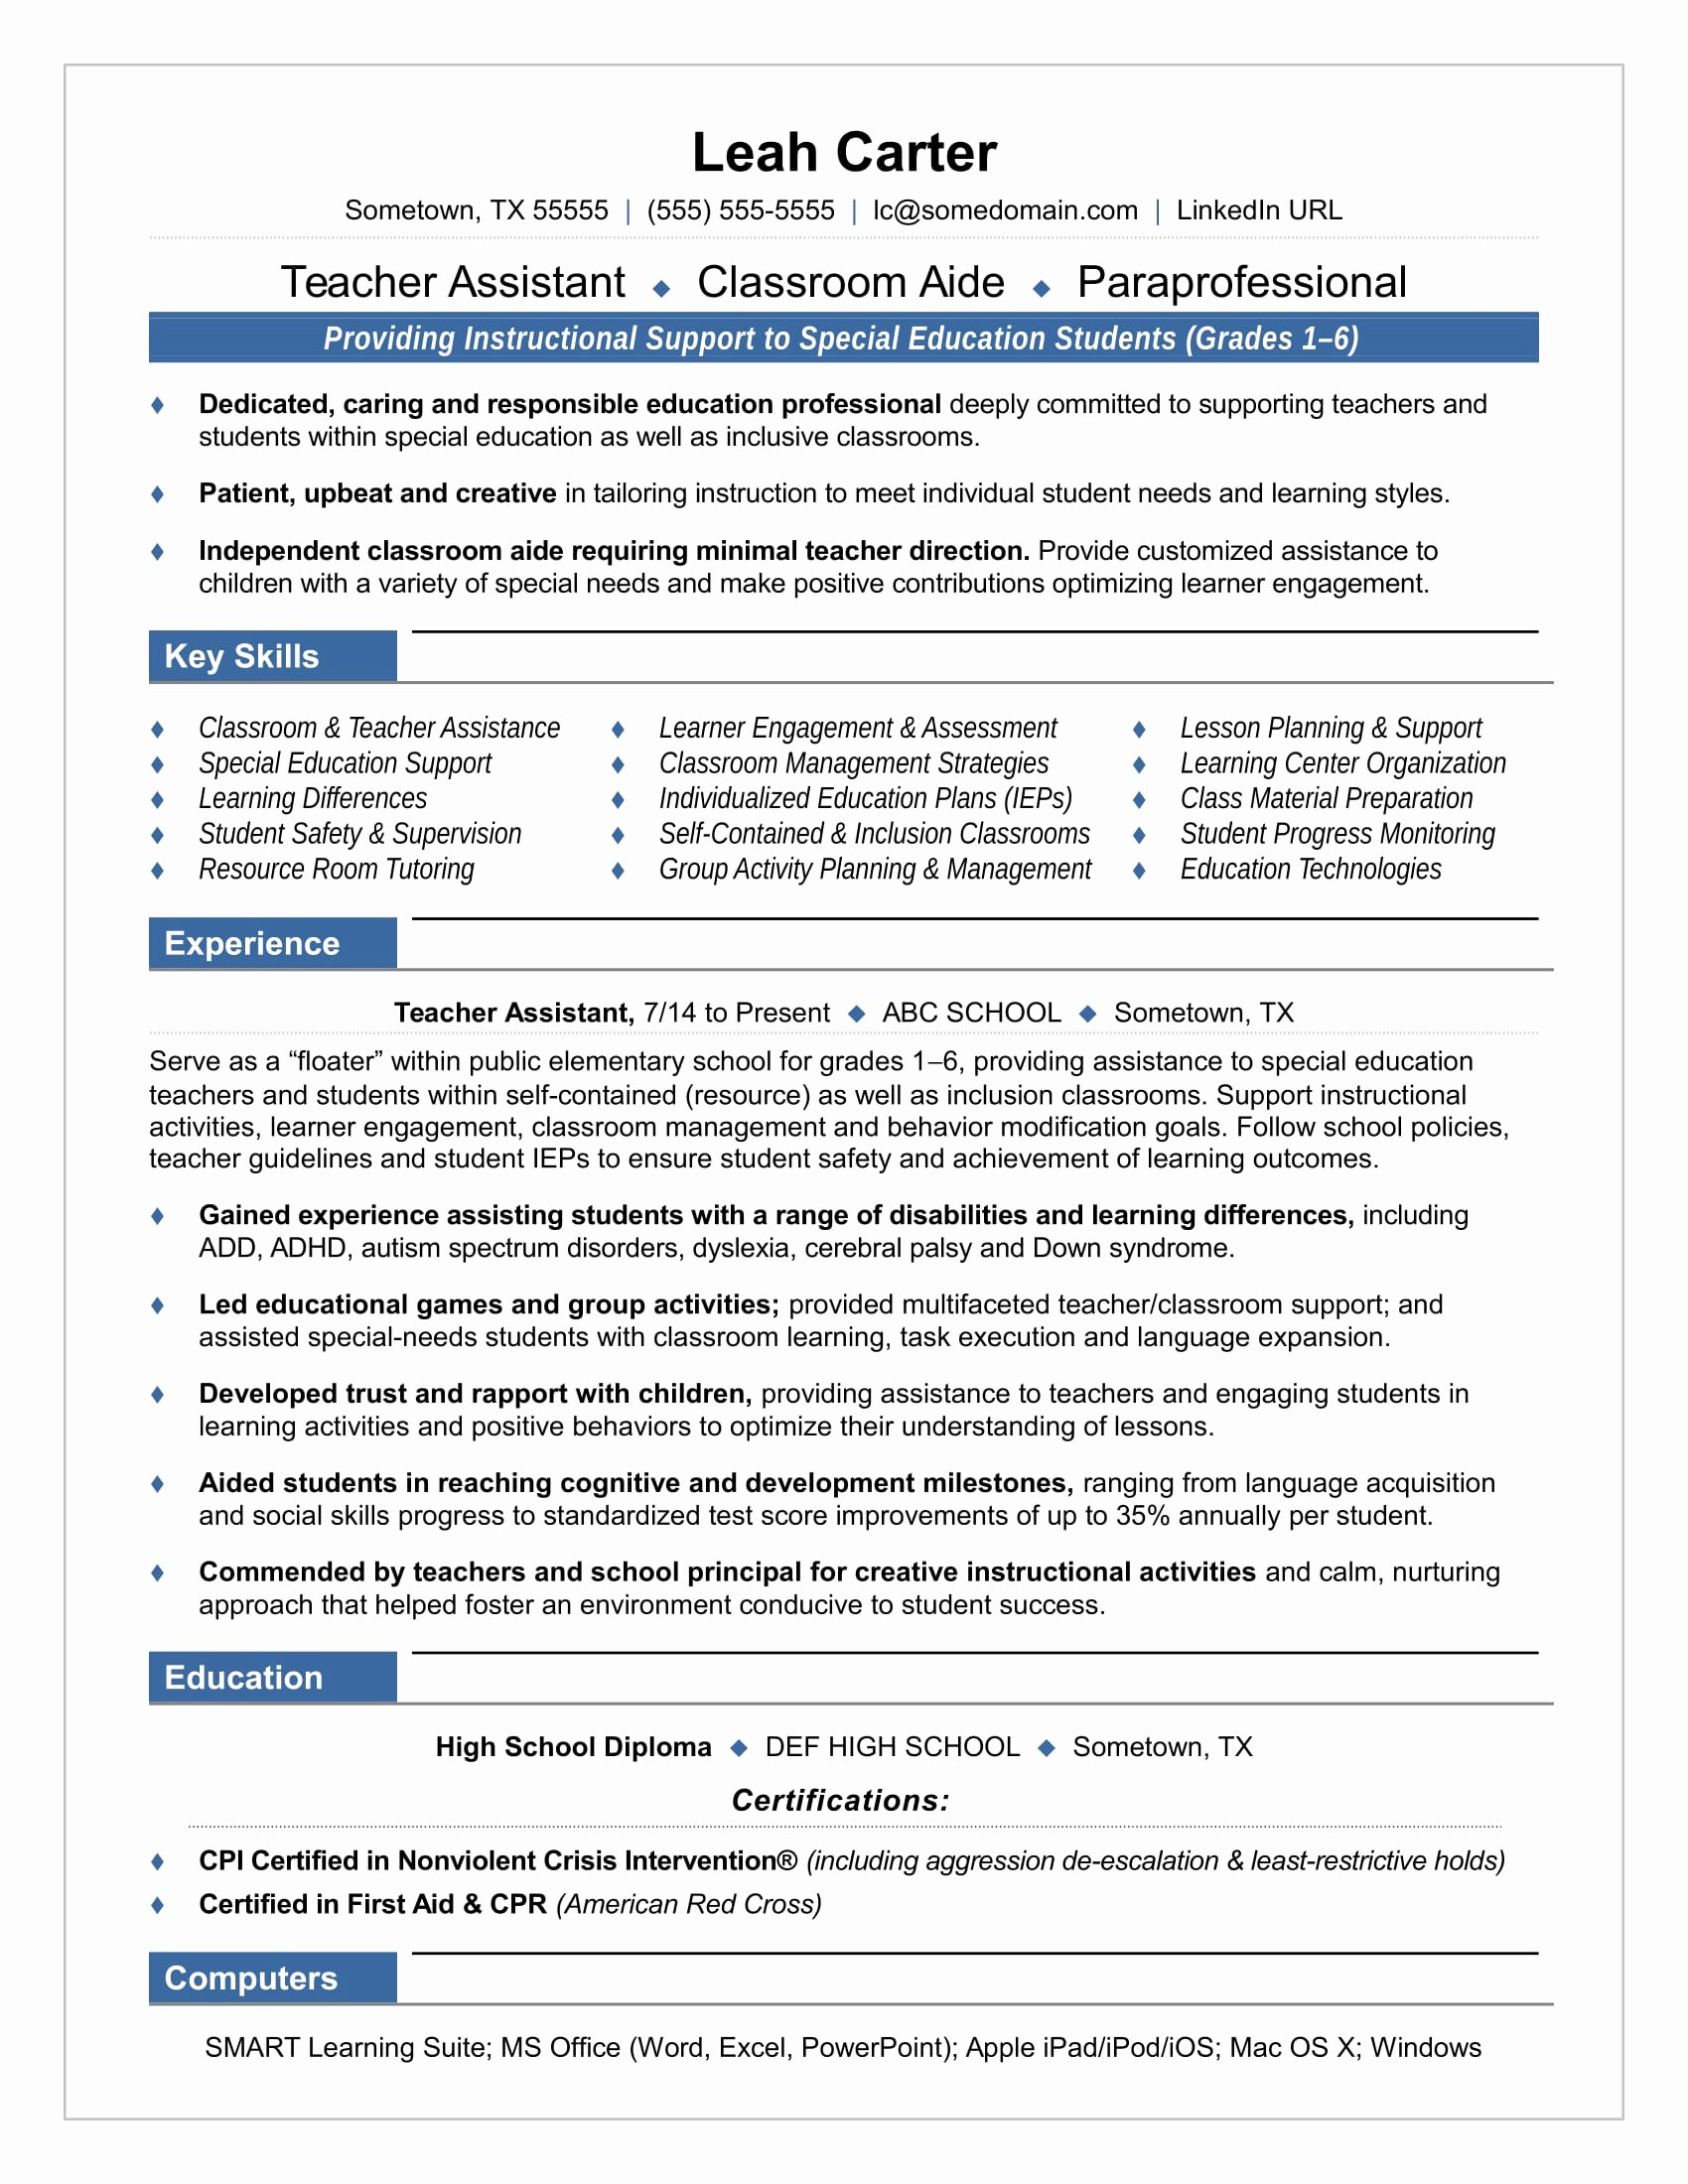 Teaching assistant Sample Resume Lovely Teacher assistant Resume Sample